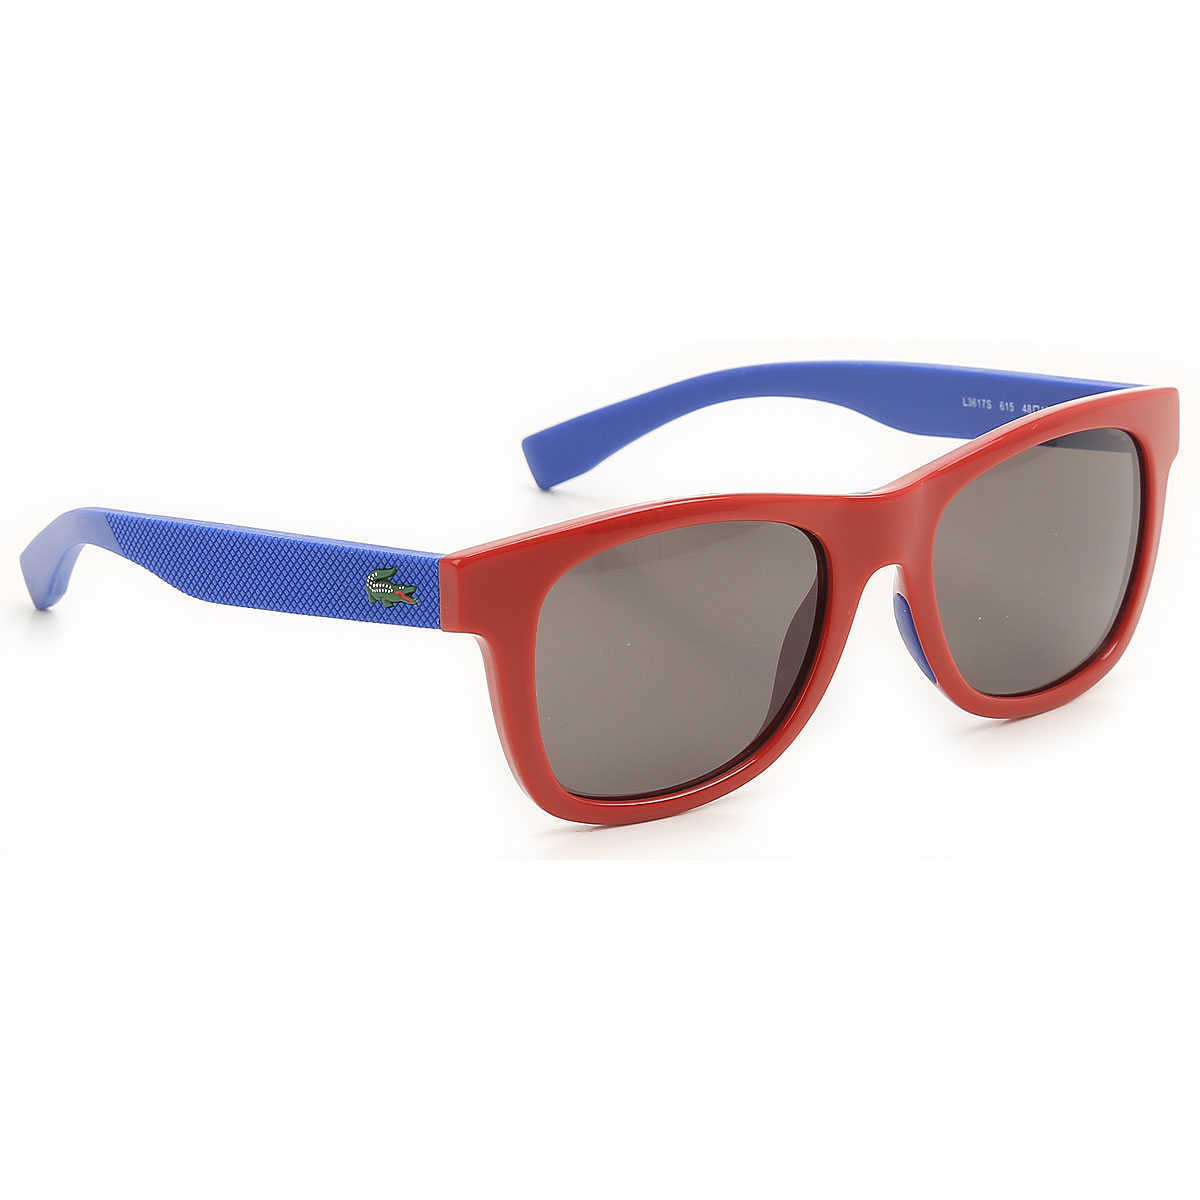 Lacoste Kids Sunglasses for Boys On Sale Red - GOOFASH - Mens SUNGLASSES